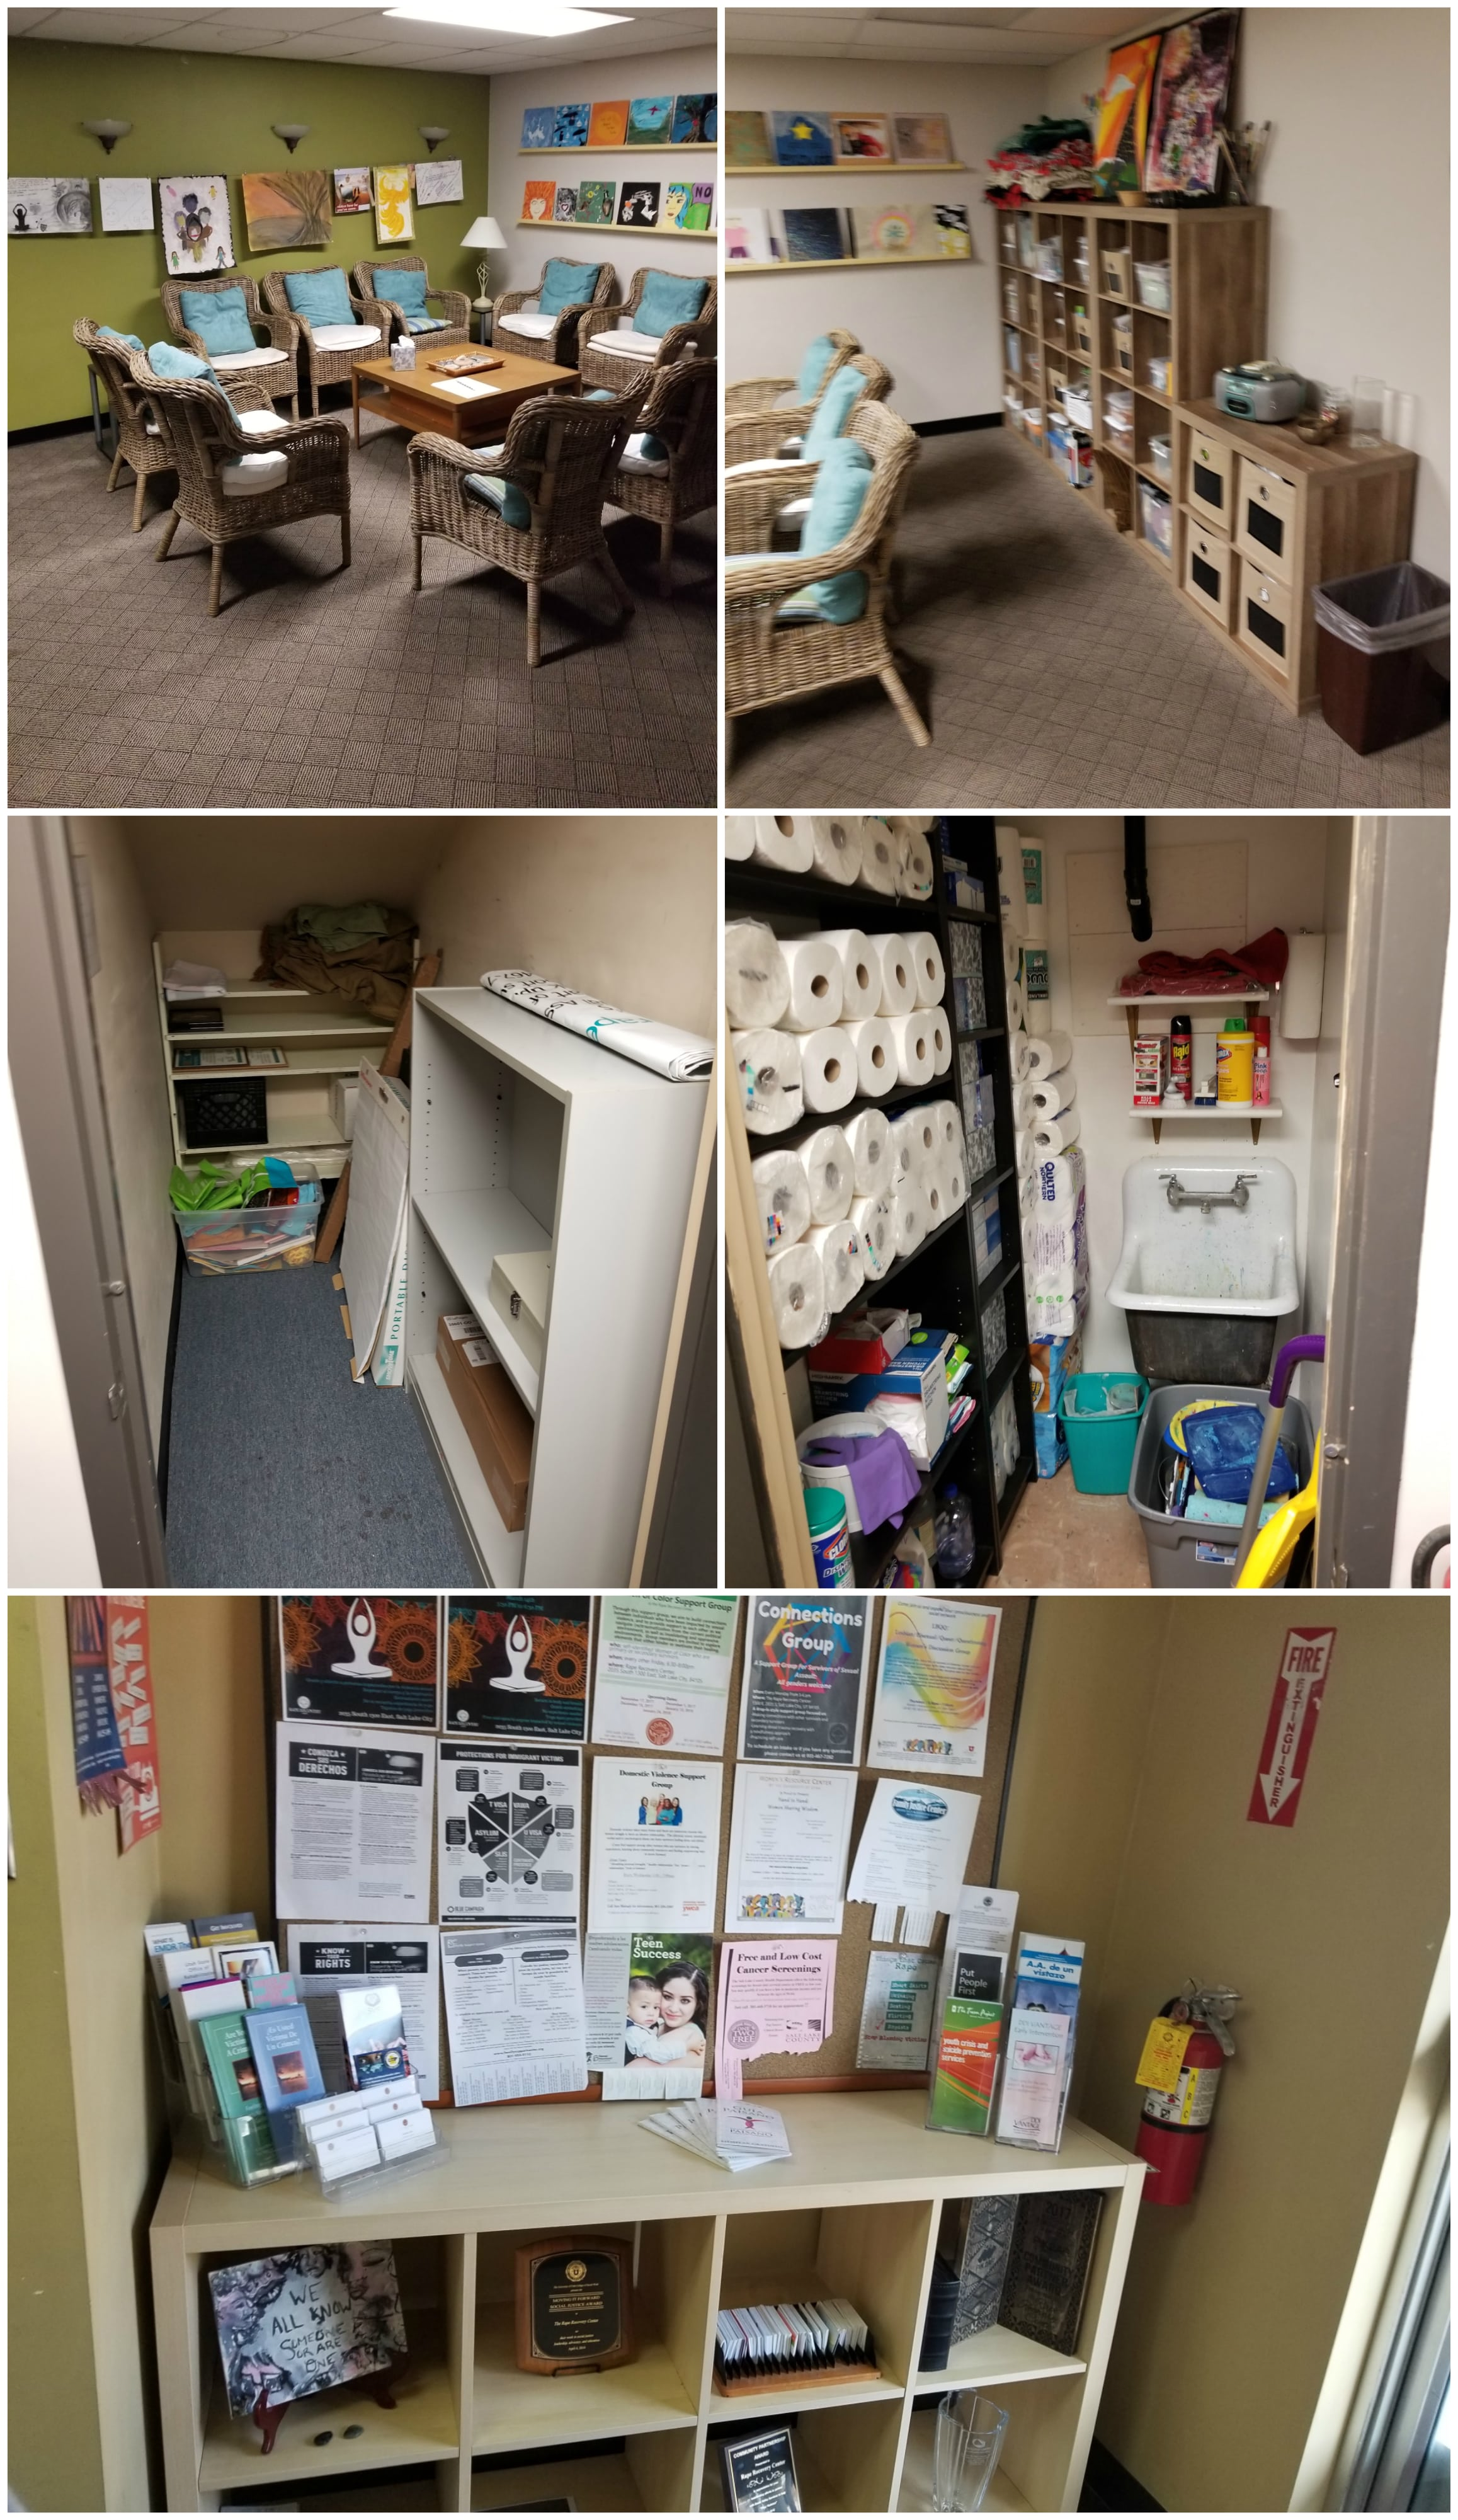 A few of the beautiful reorganized and redesigned spaces.